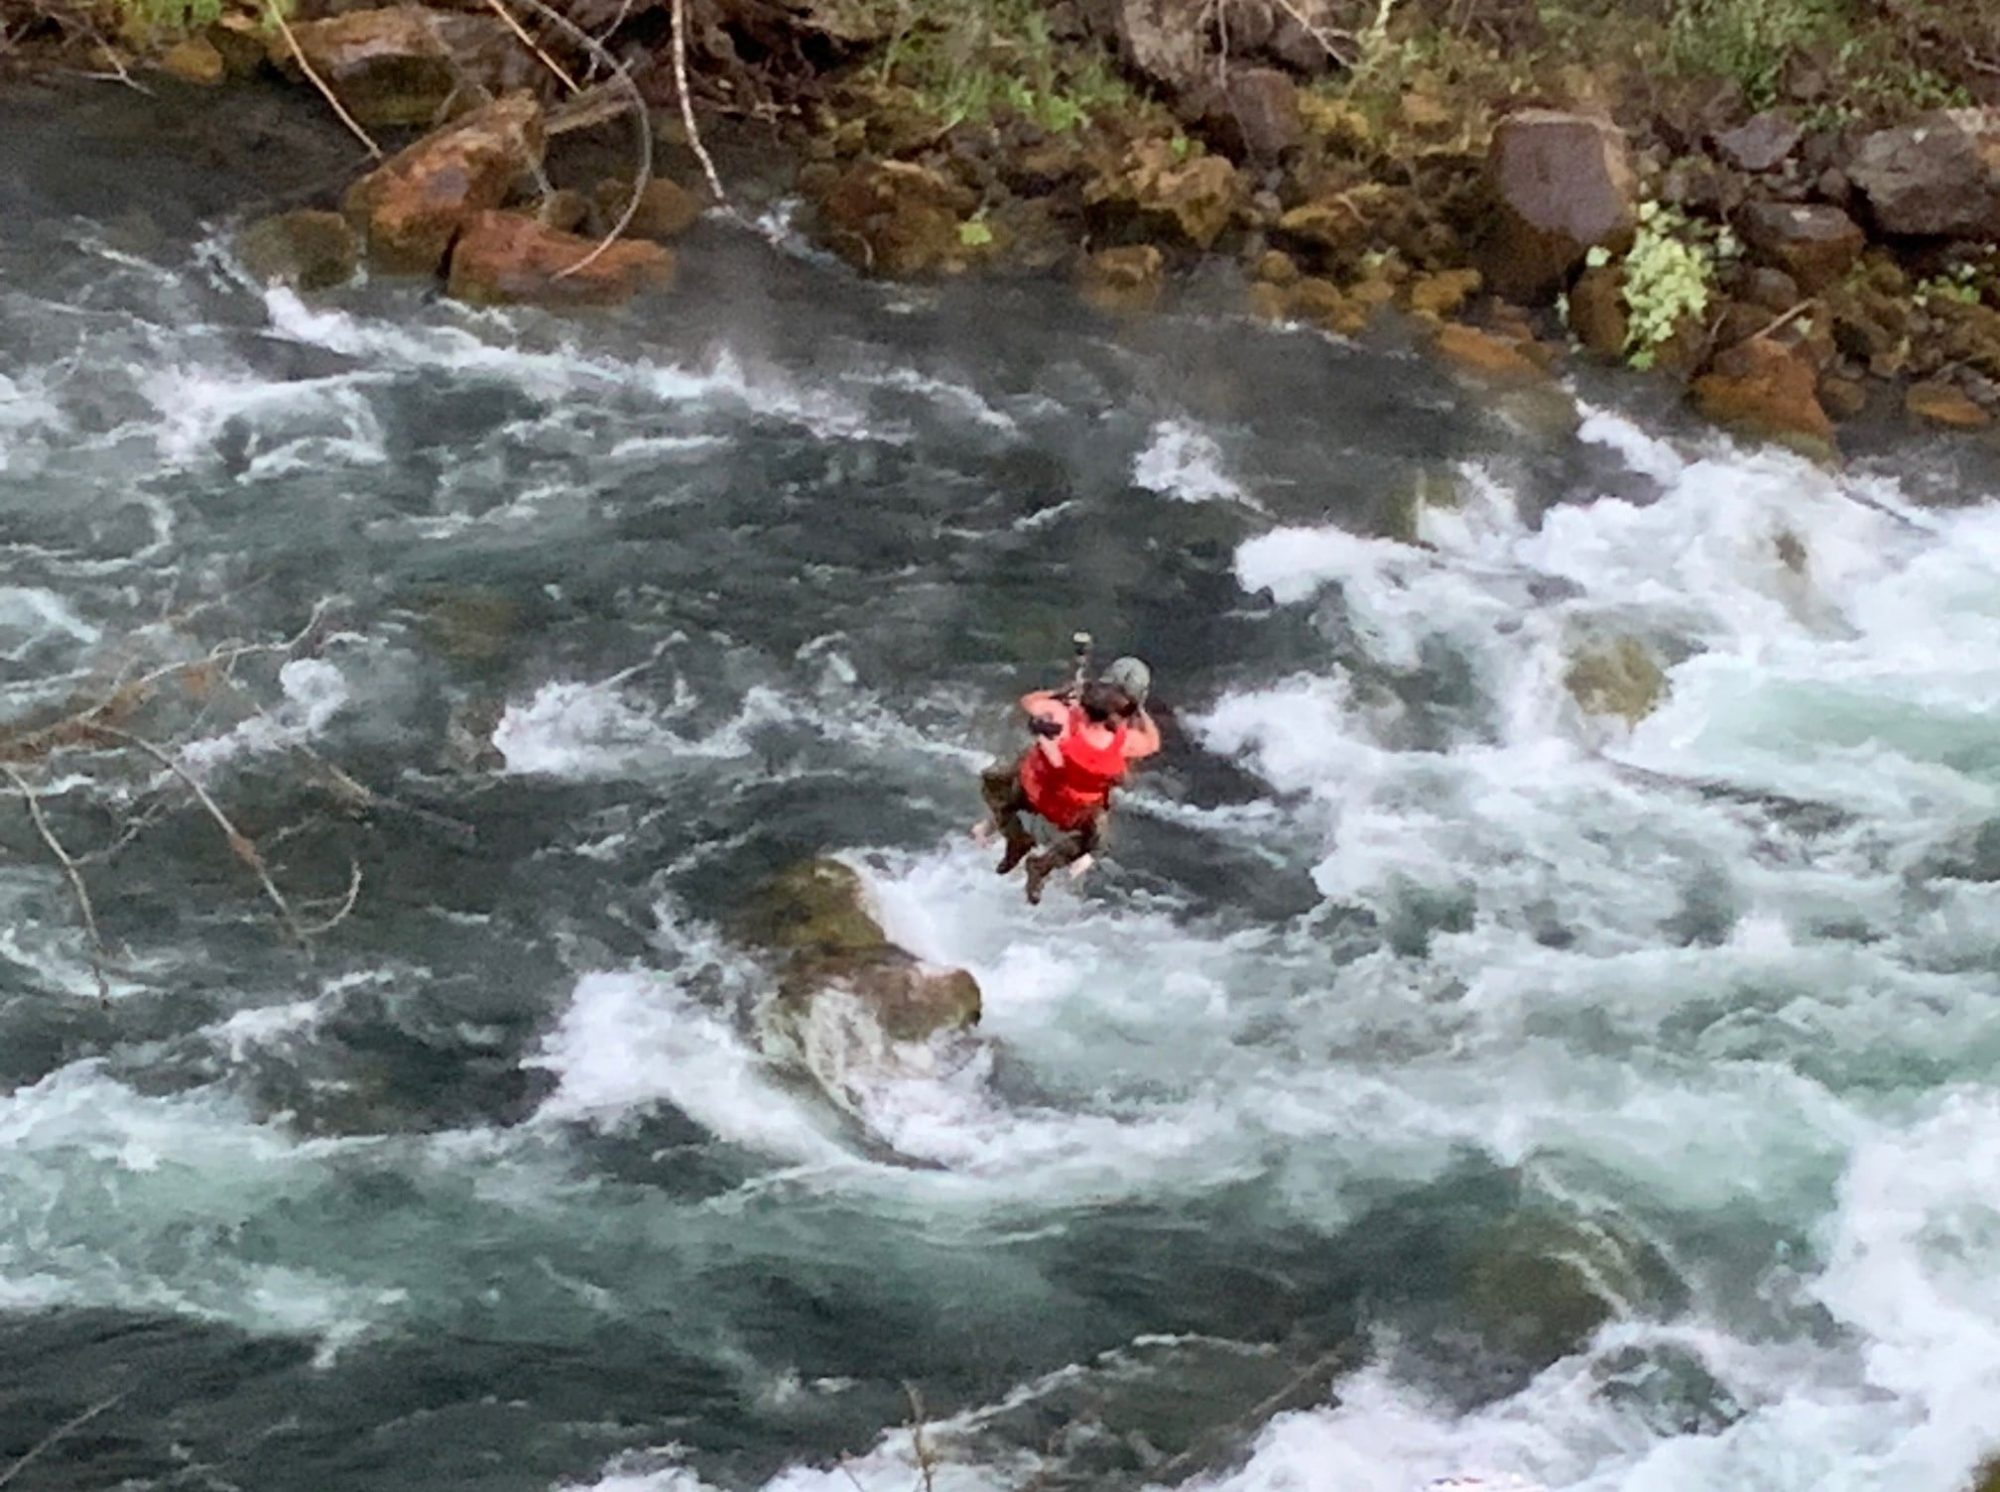 Yesterday Salem Fire Department crews responded for Mutual Aid with some great partners Clackamas Fire, Tualatin Valley Fire and Rescue, Oregon National Guard - Oregon Military Department, and several others! The combined effort resulted in the rescue of five people from the Santiam River. The teams used swift water rescue, rescue swimmers, rope rescue, and air support to rescue these people.